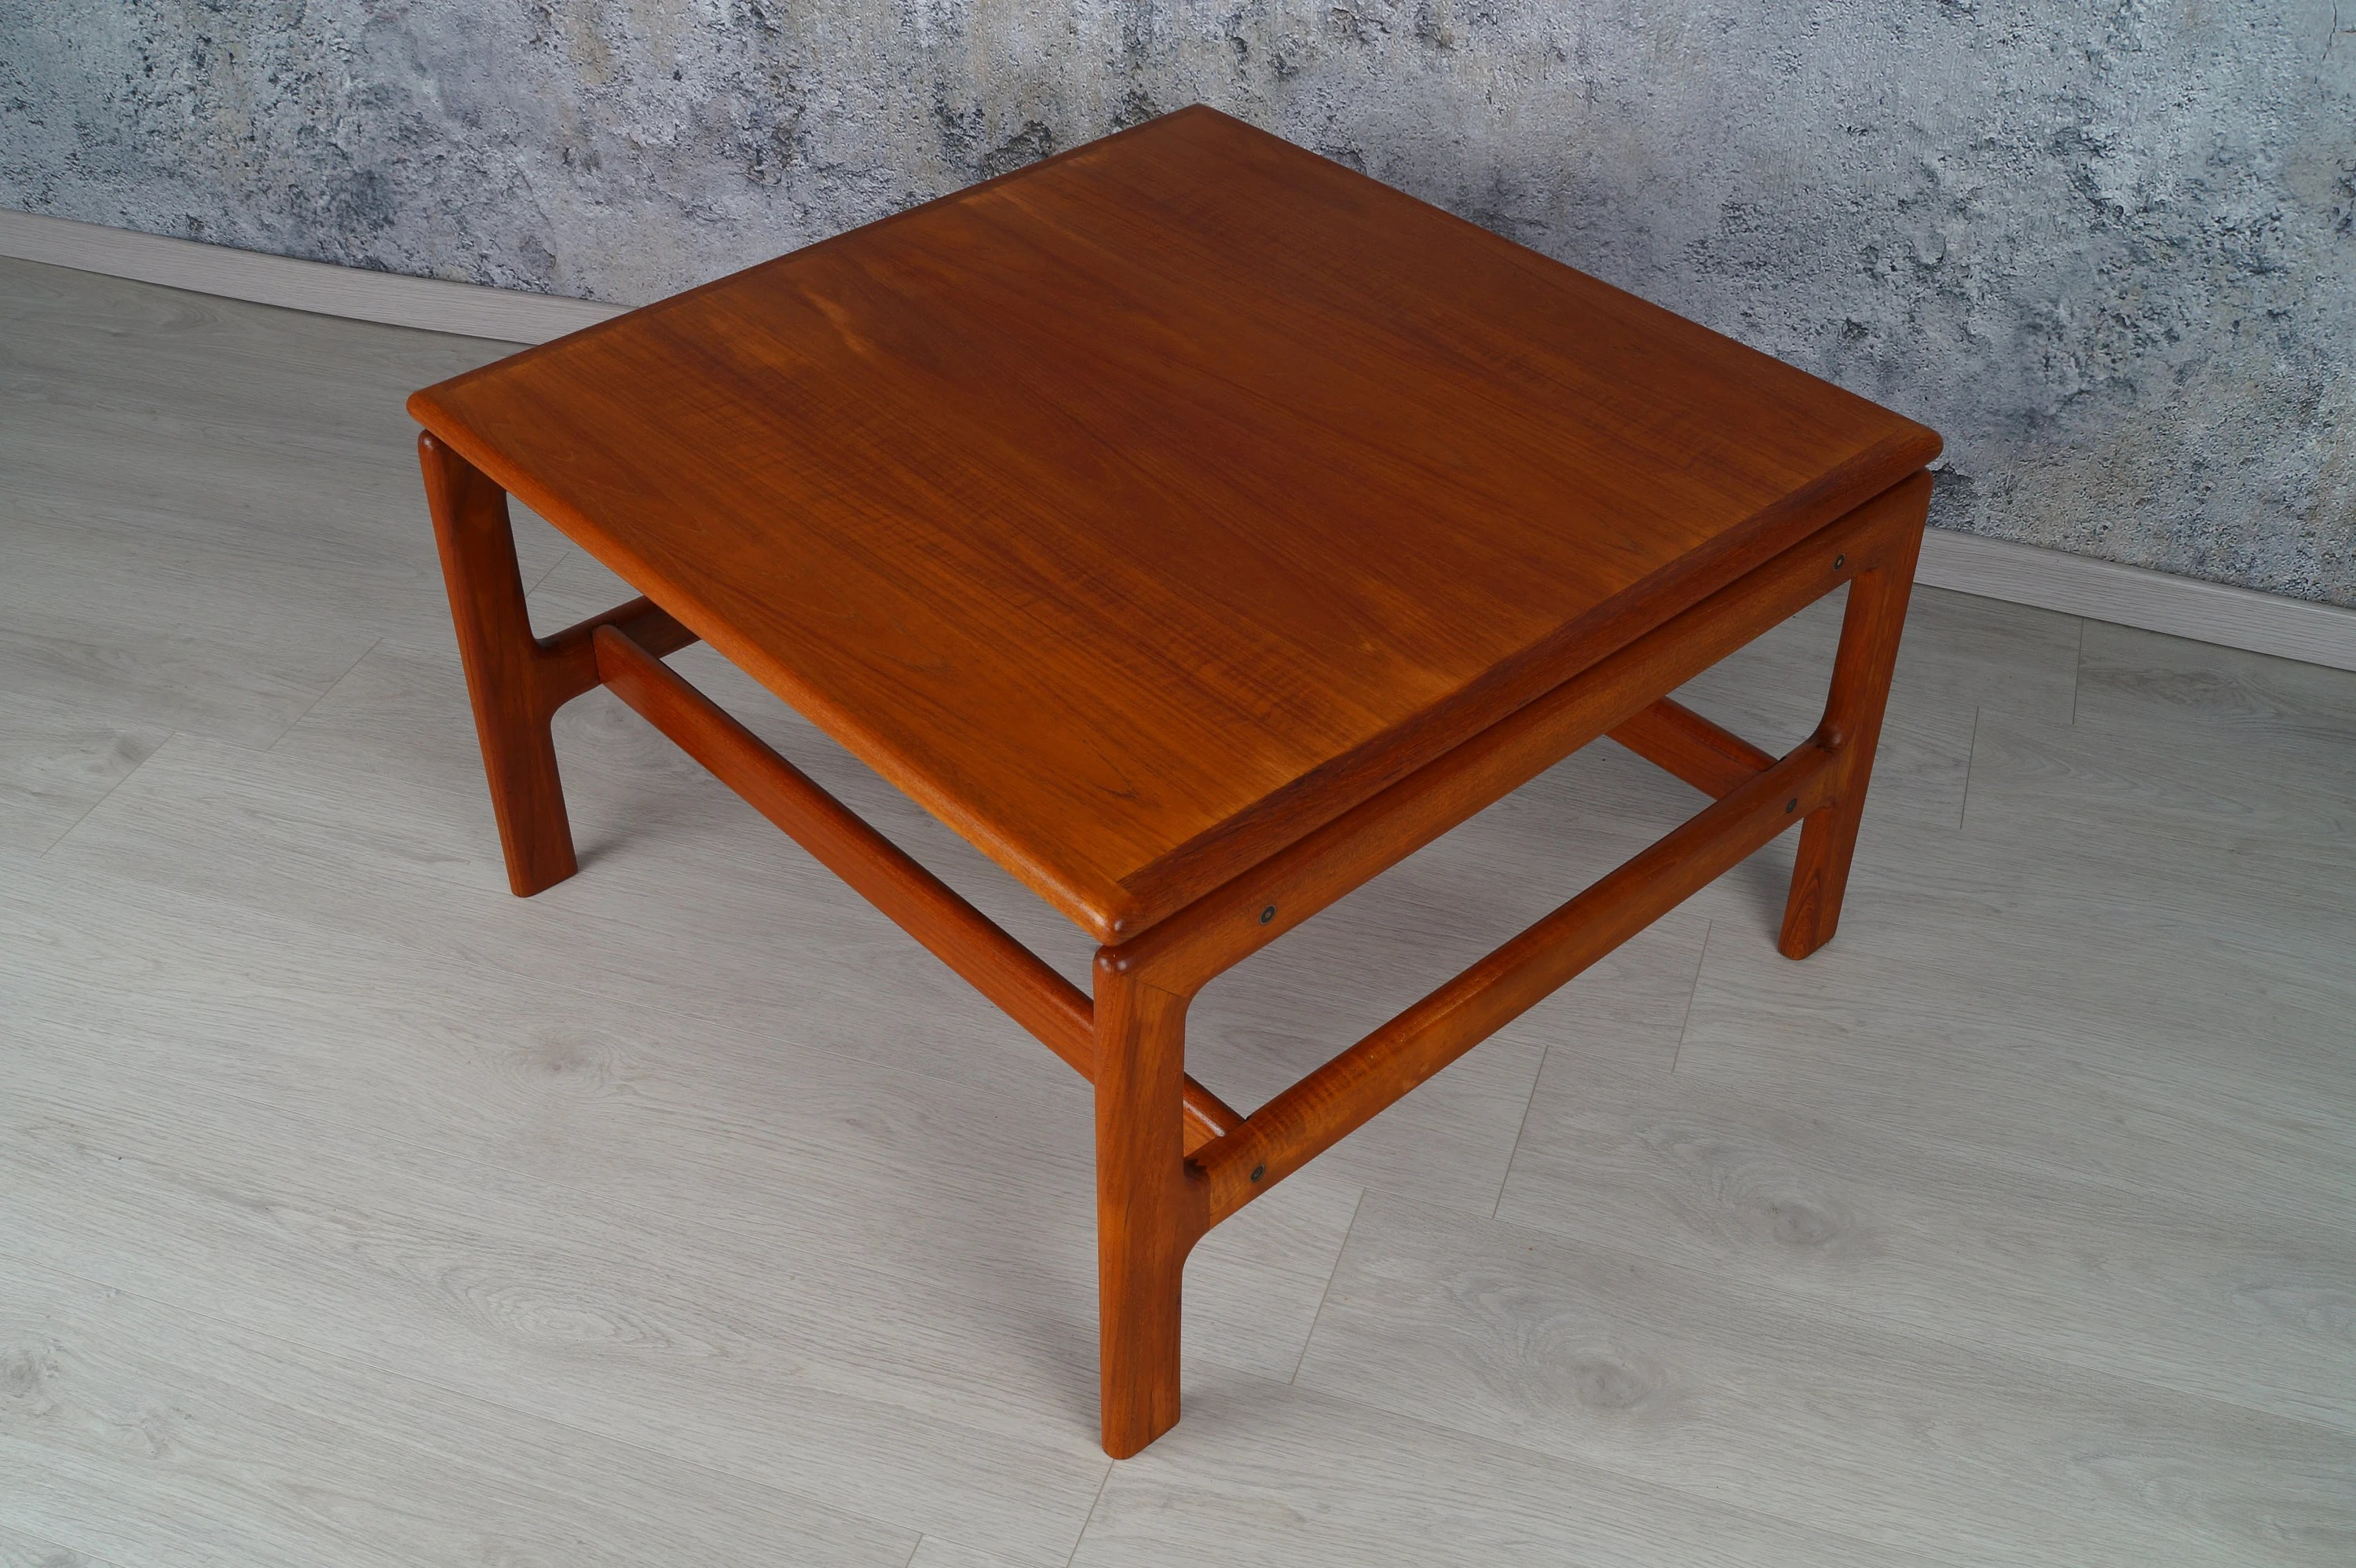 Design Couchtisch 80x80 Teak Coffee Table 80 X 80 Cm Square Comfort 60s Danish 60s